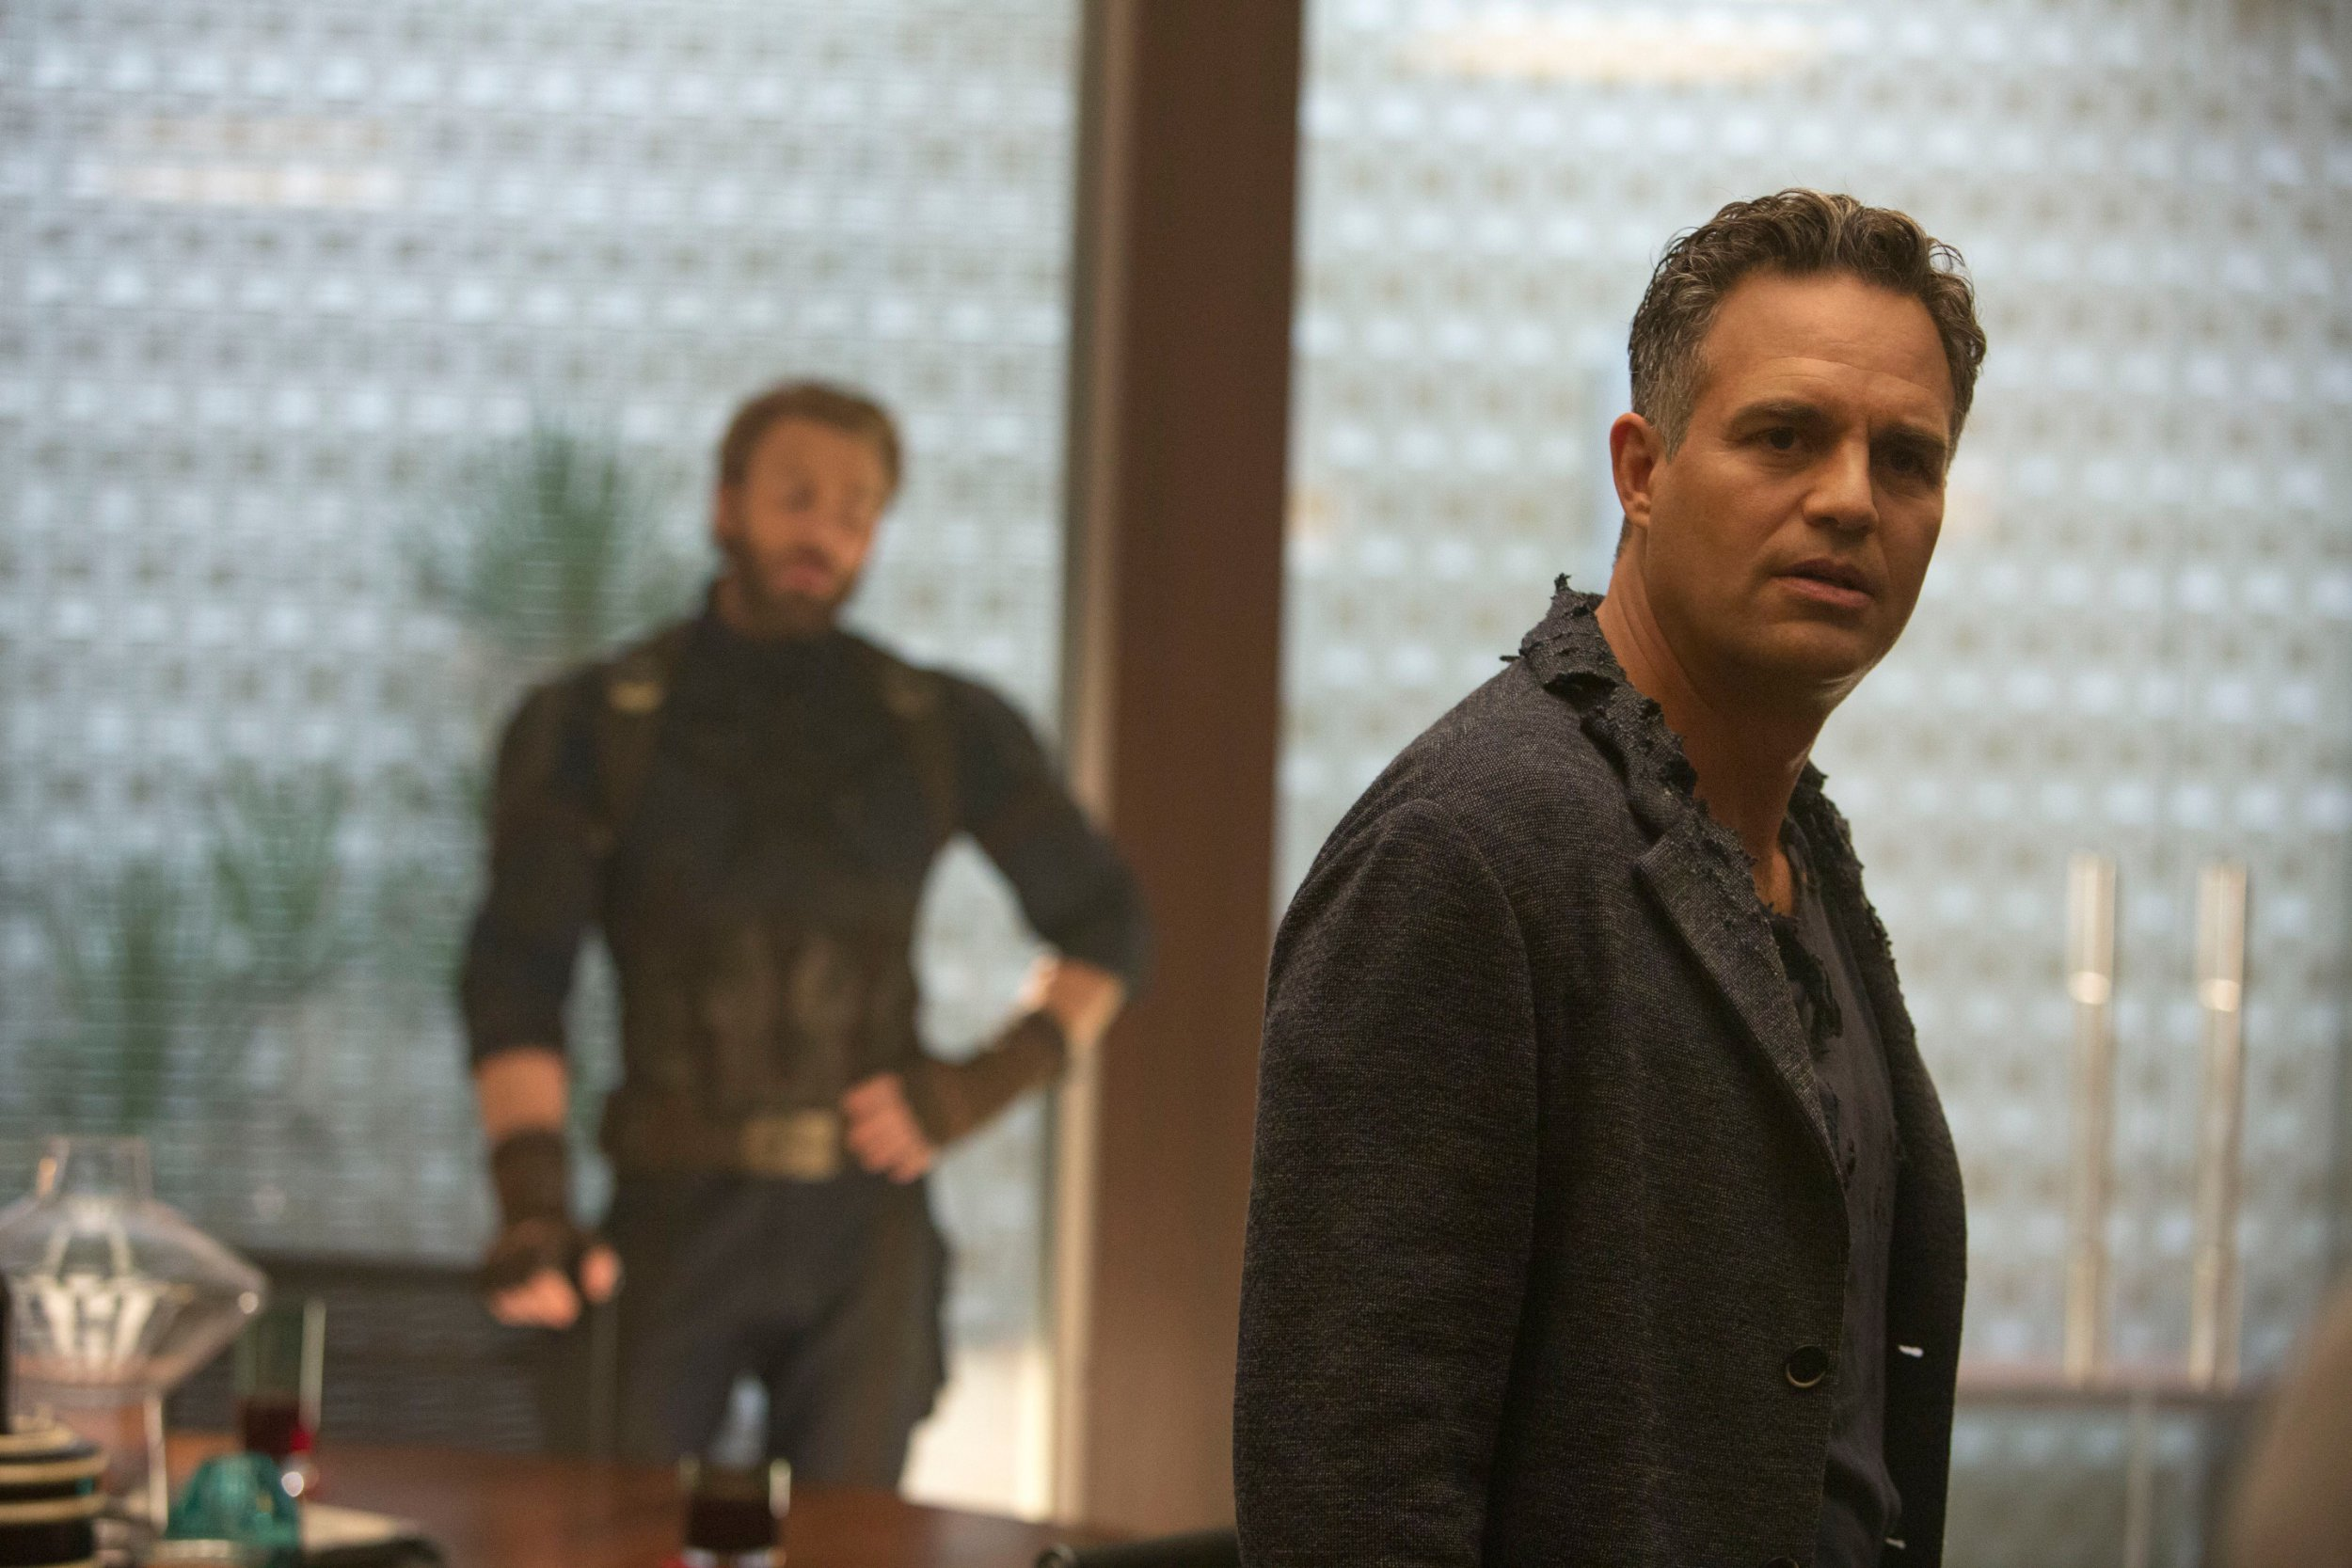 Not even the Russo Brothers can agree on Avengers 4 title, has been changed 'three times' this year